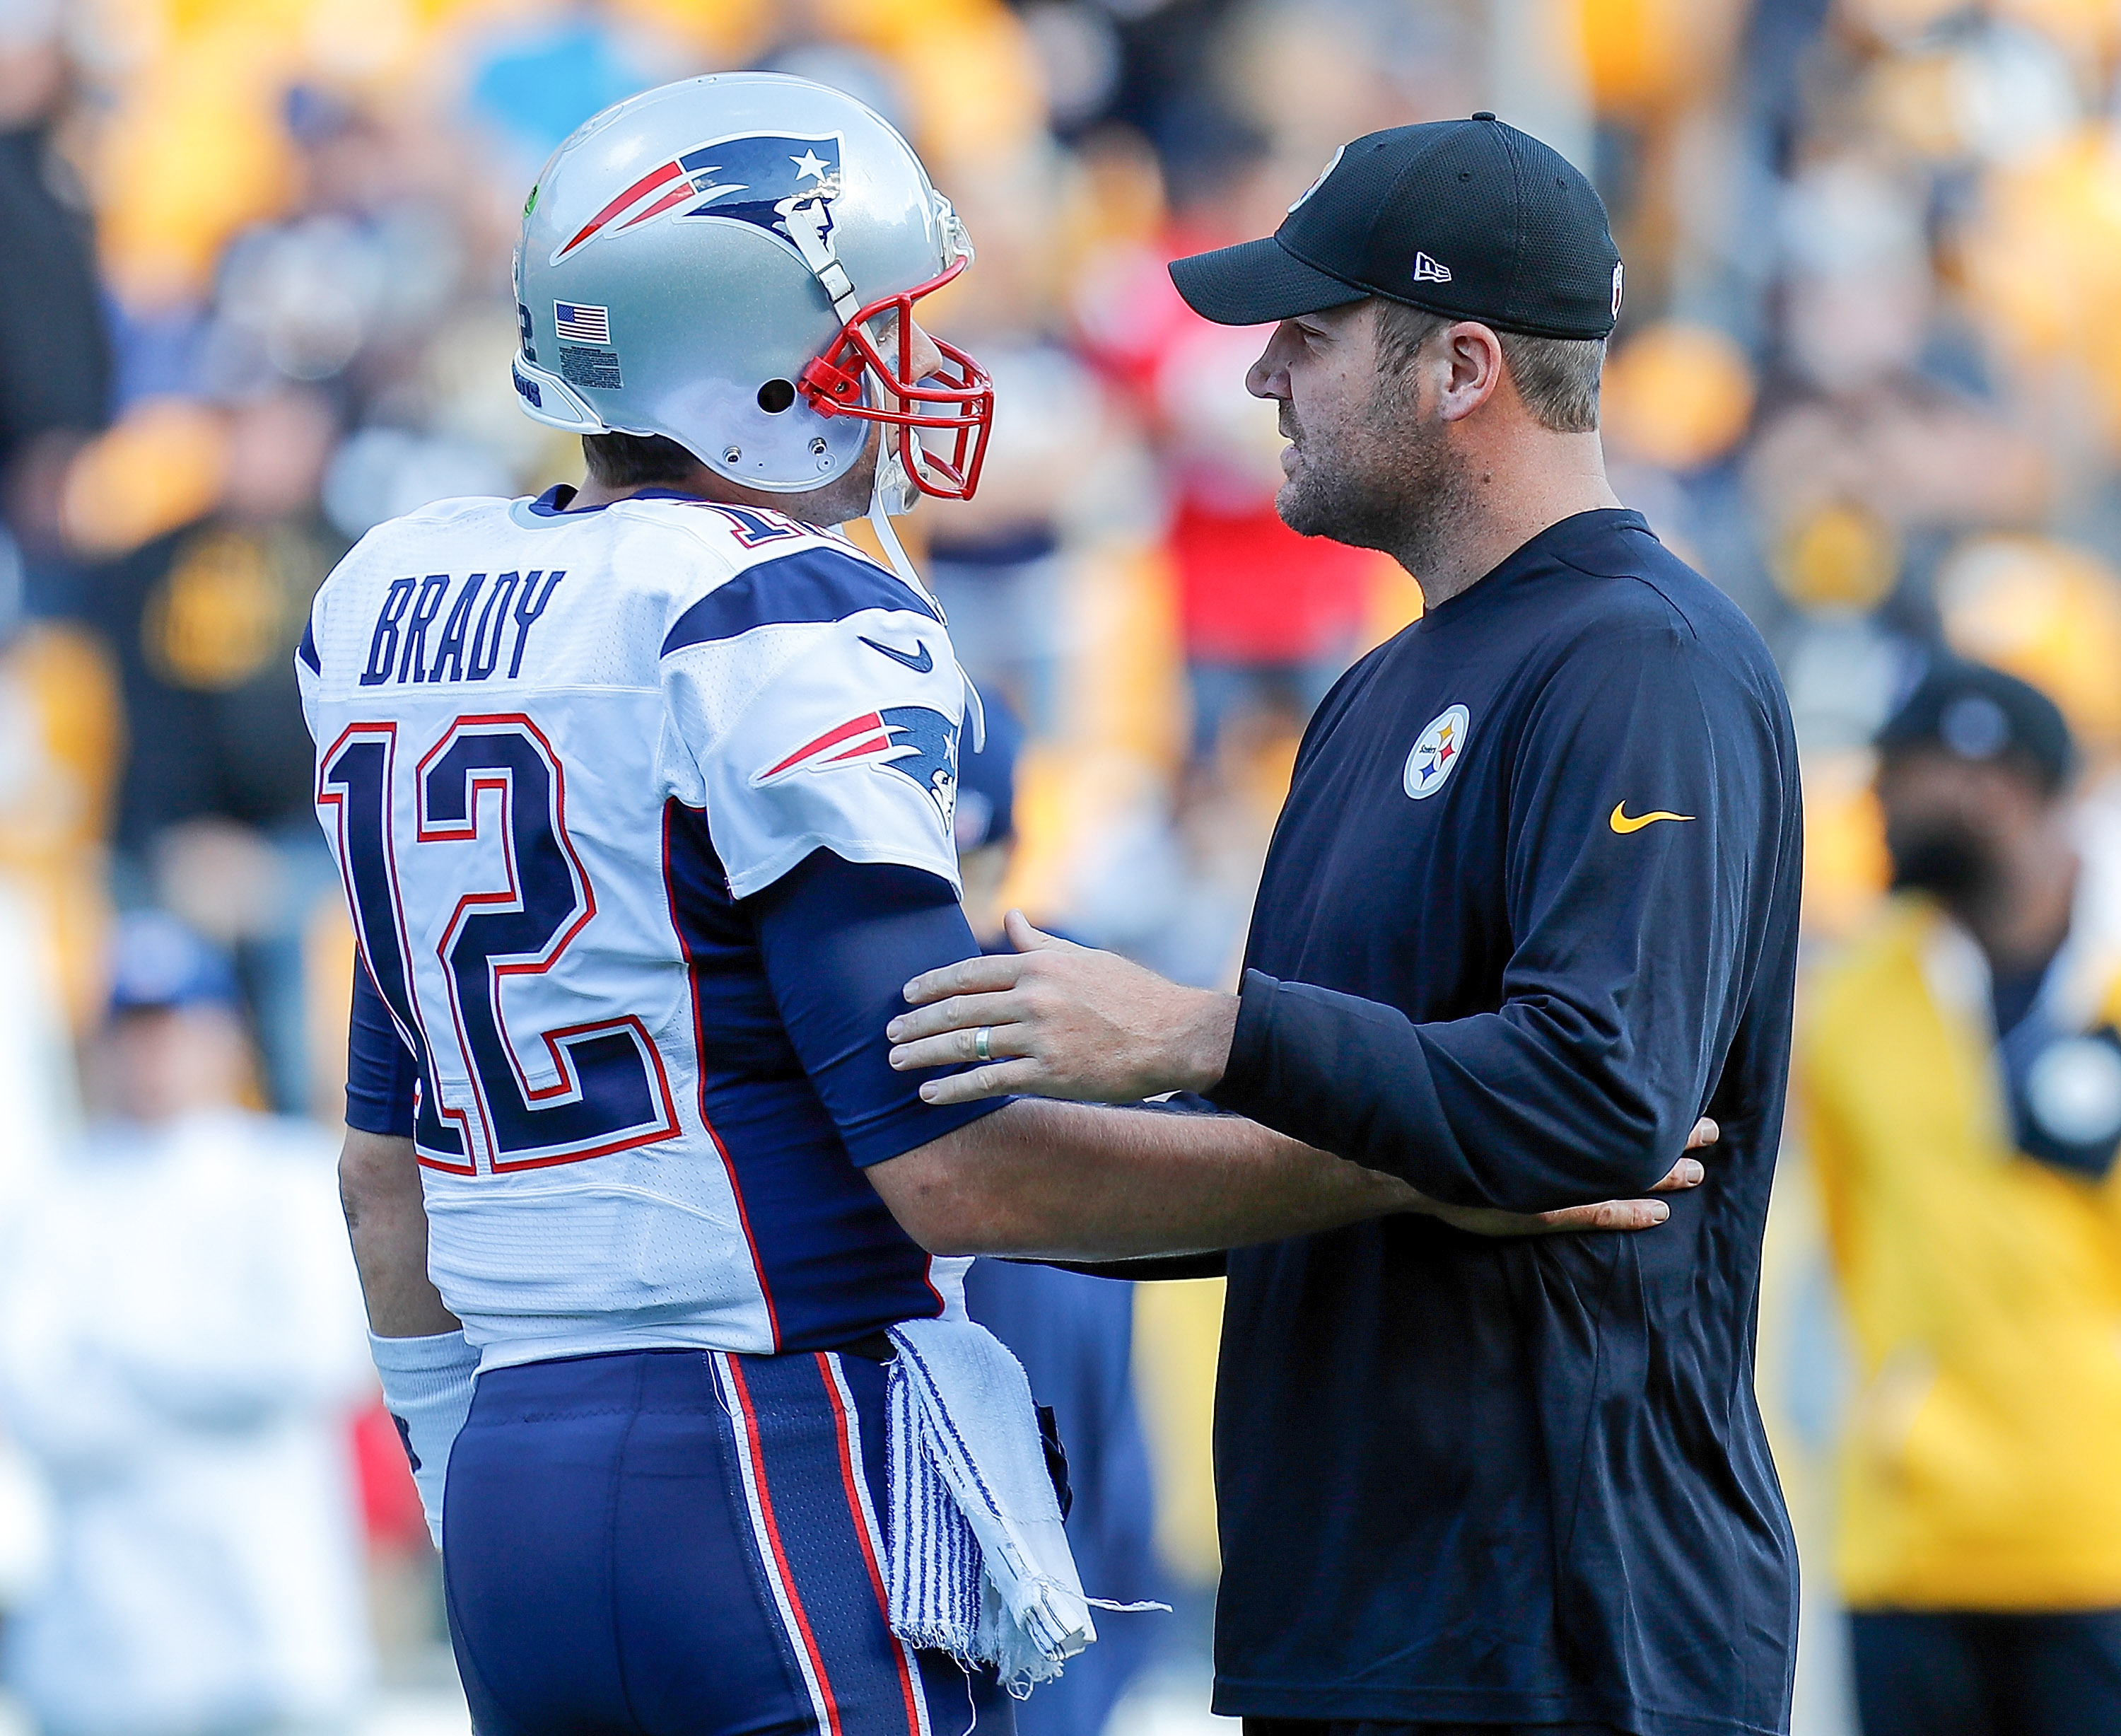 Championship Sunday predictions: Steelers vs Patriots